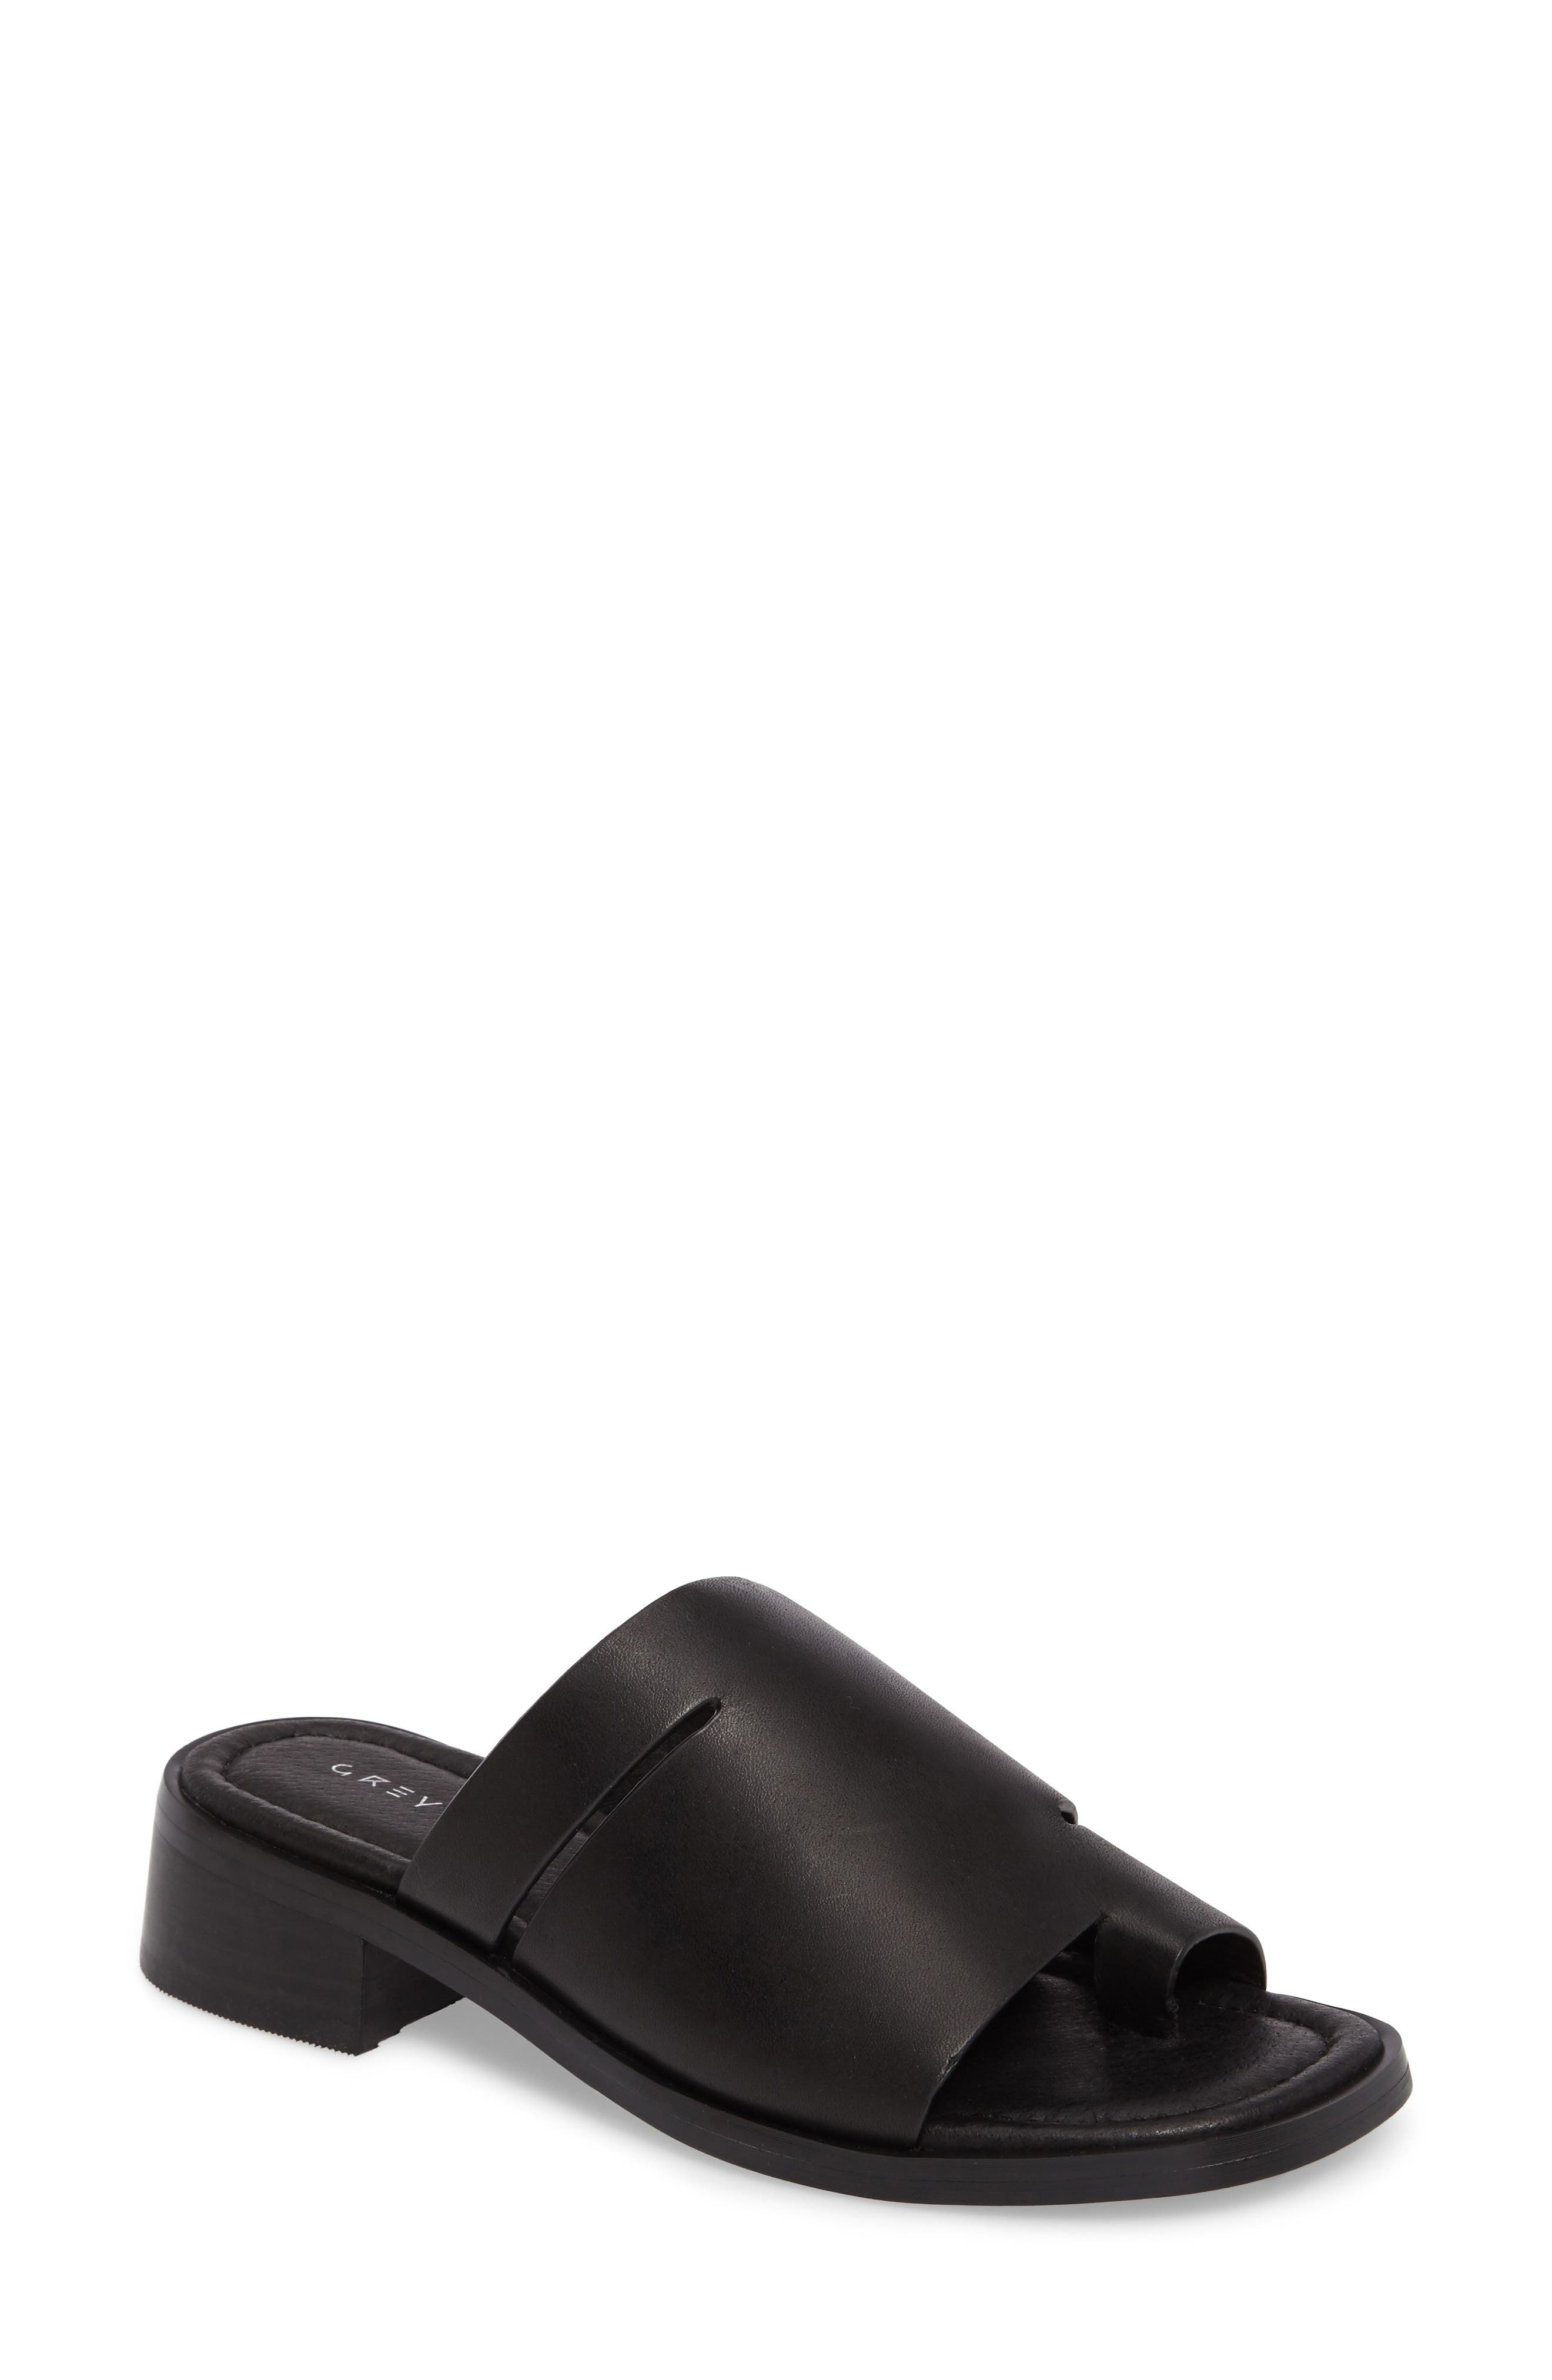 Grey City Percy Toe-Loop Slide Sandal (Women)